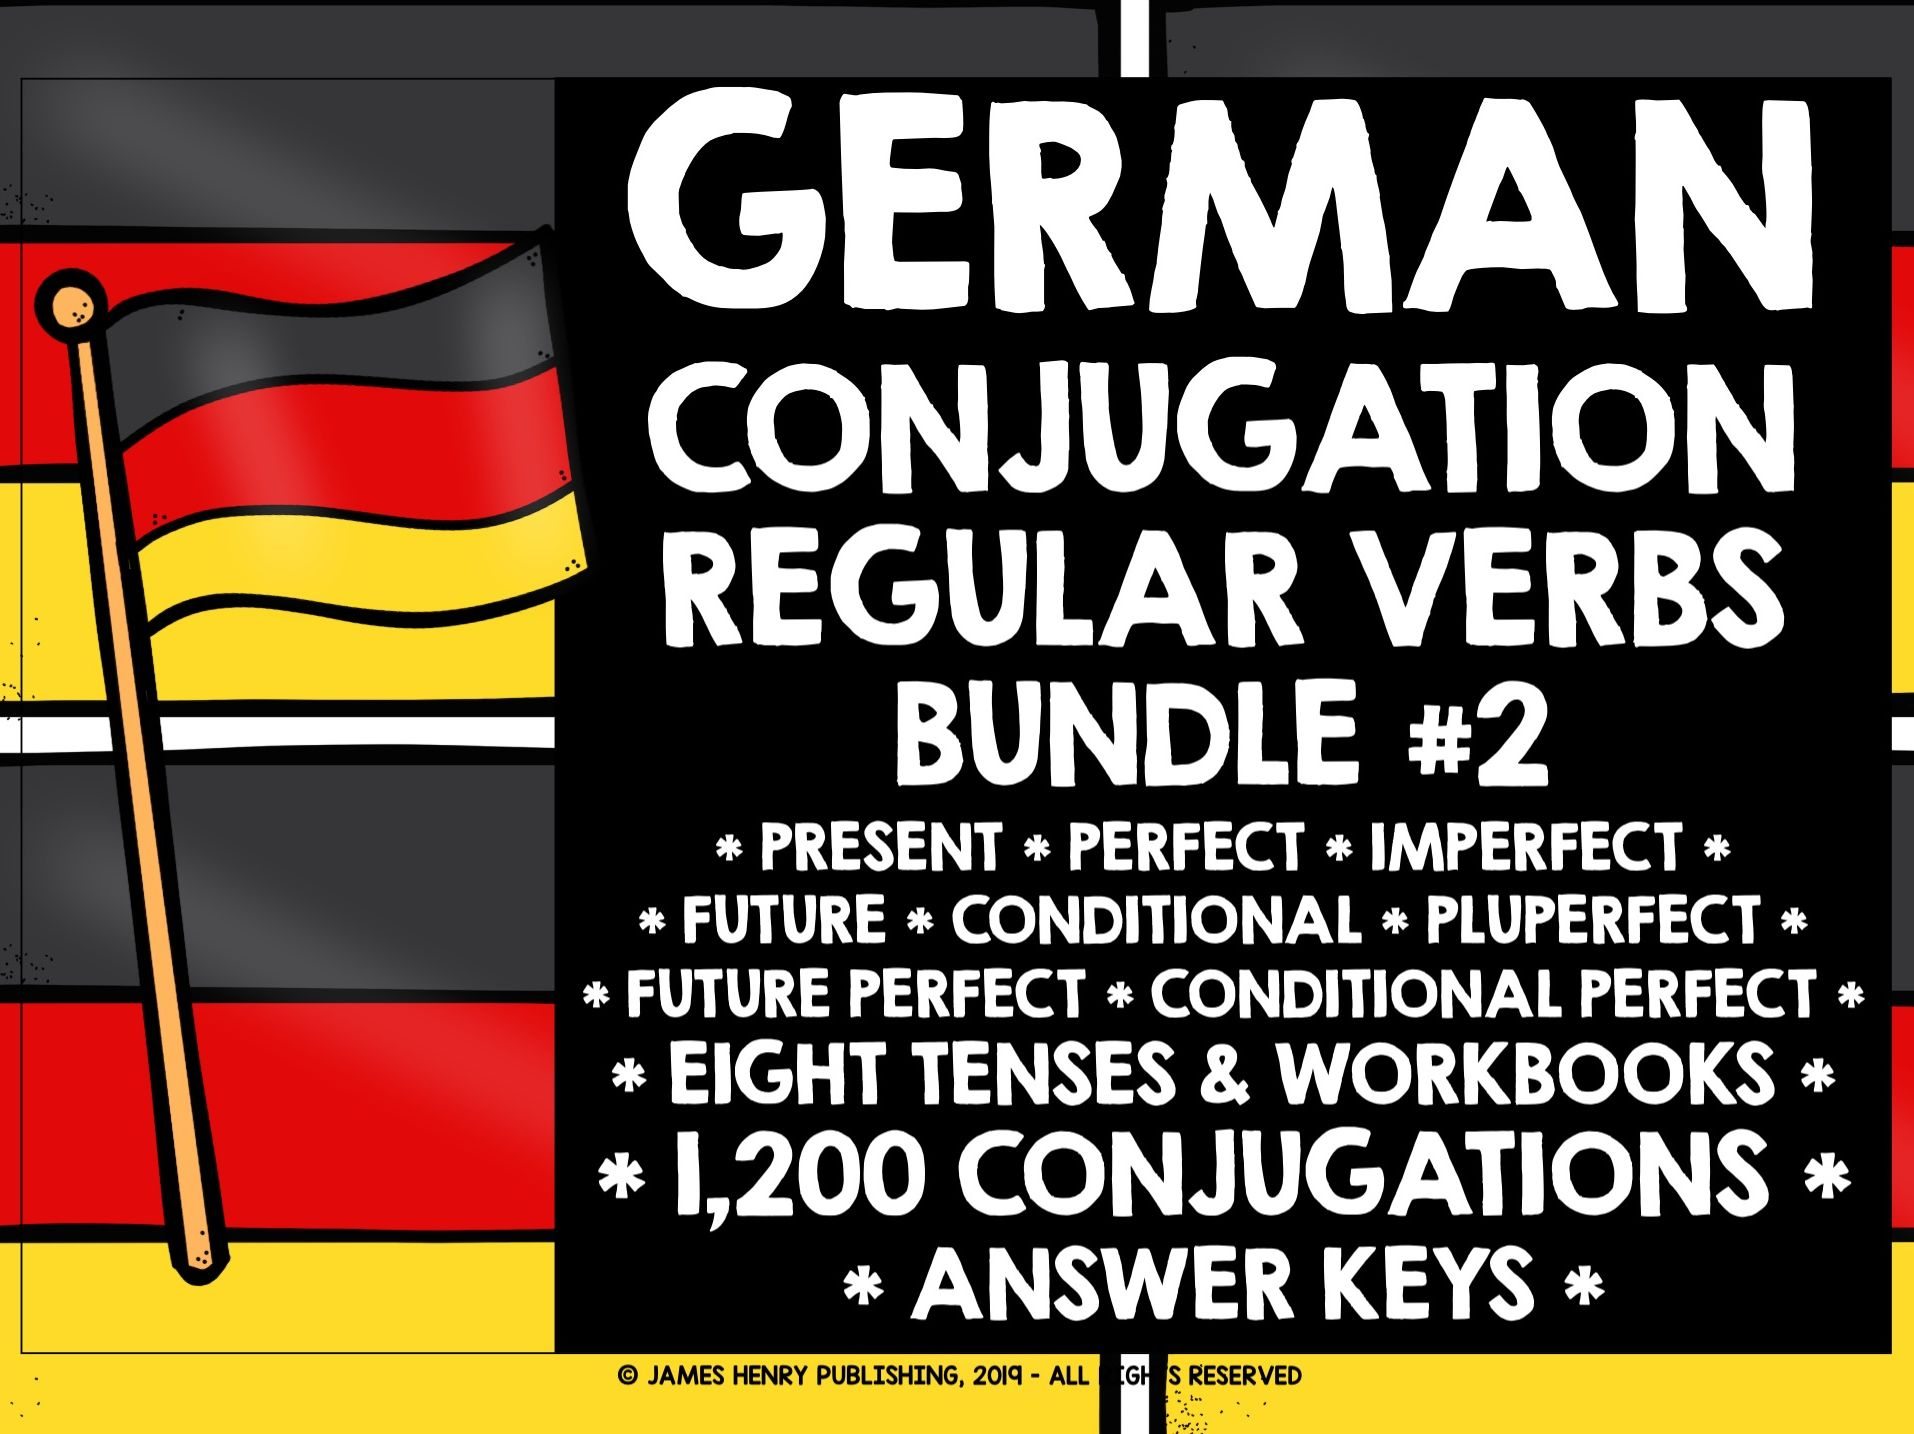 GERMAN REGULAR VERBS CONJUGATION BUNDLE #2